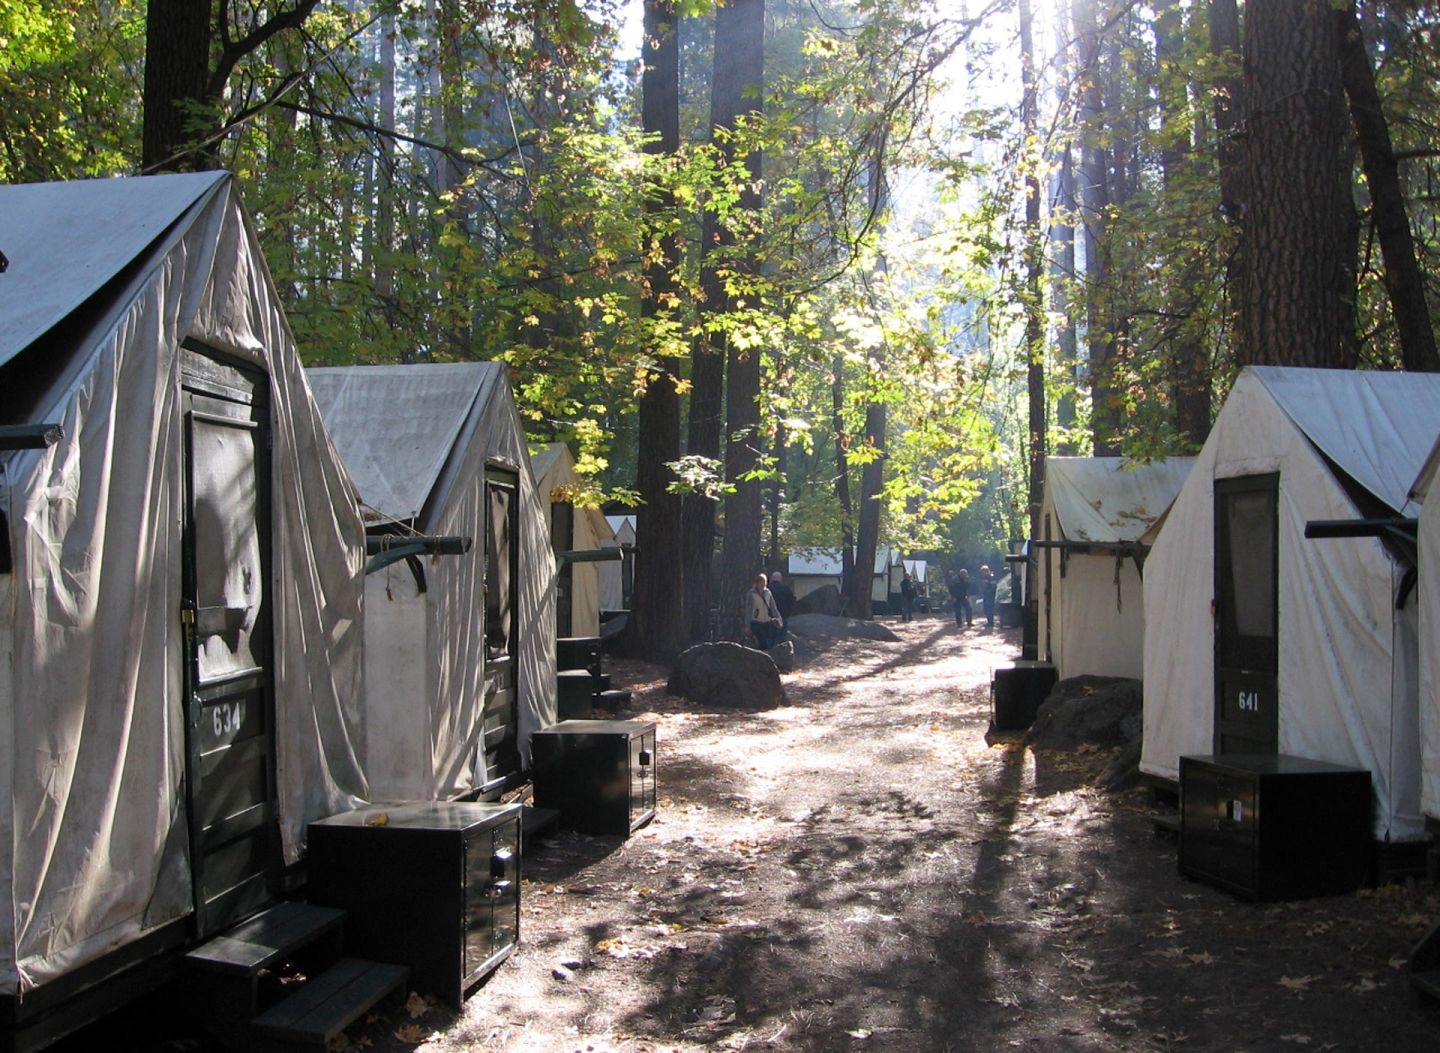 Tent cabins at Yosemite's Curry Village, now to be called Half Dome Village.